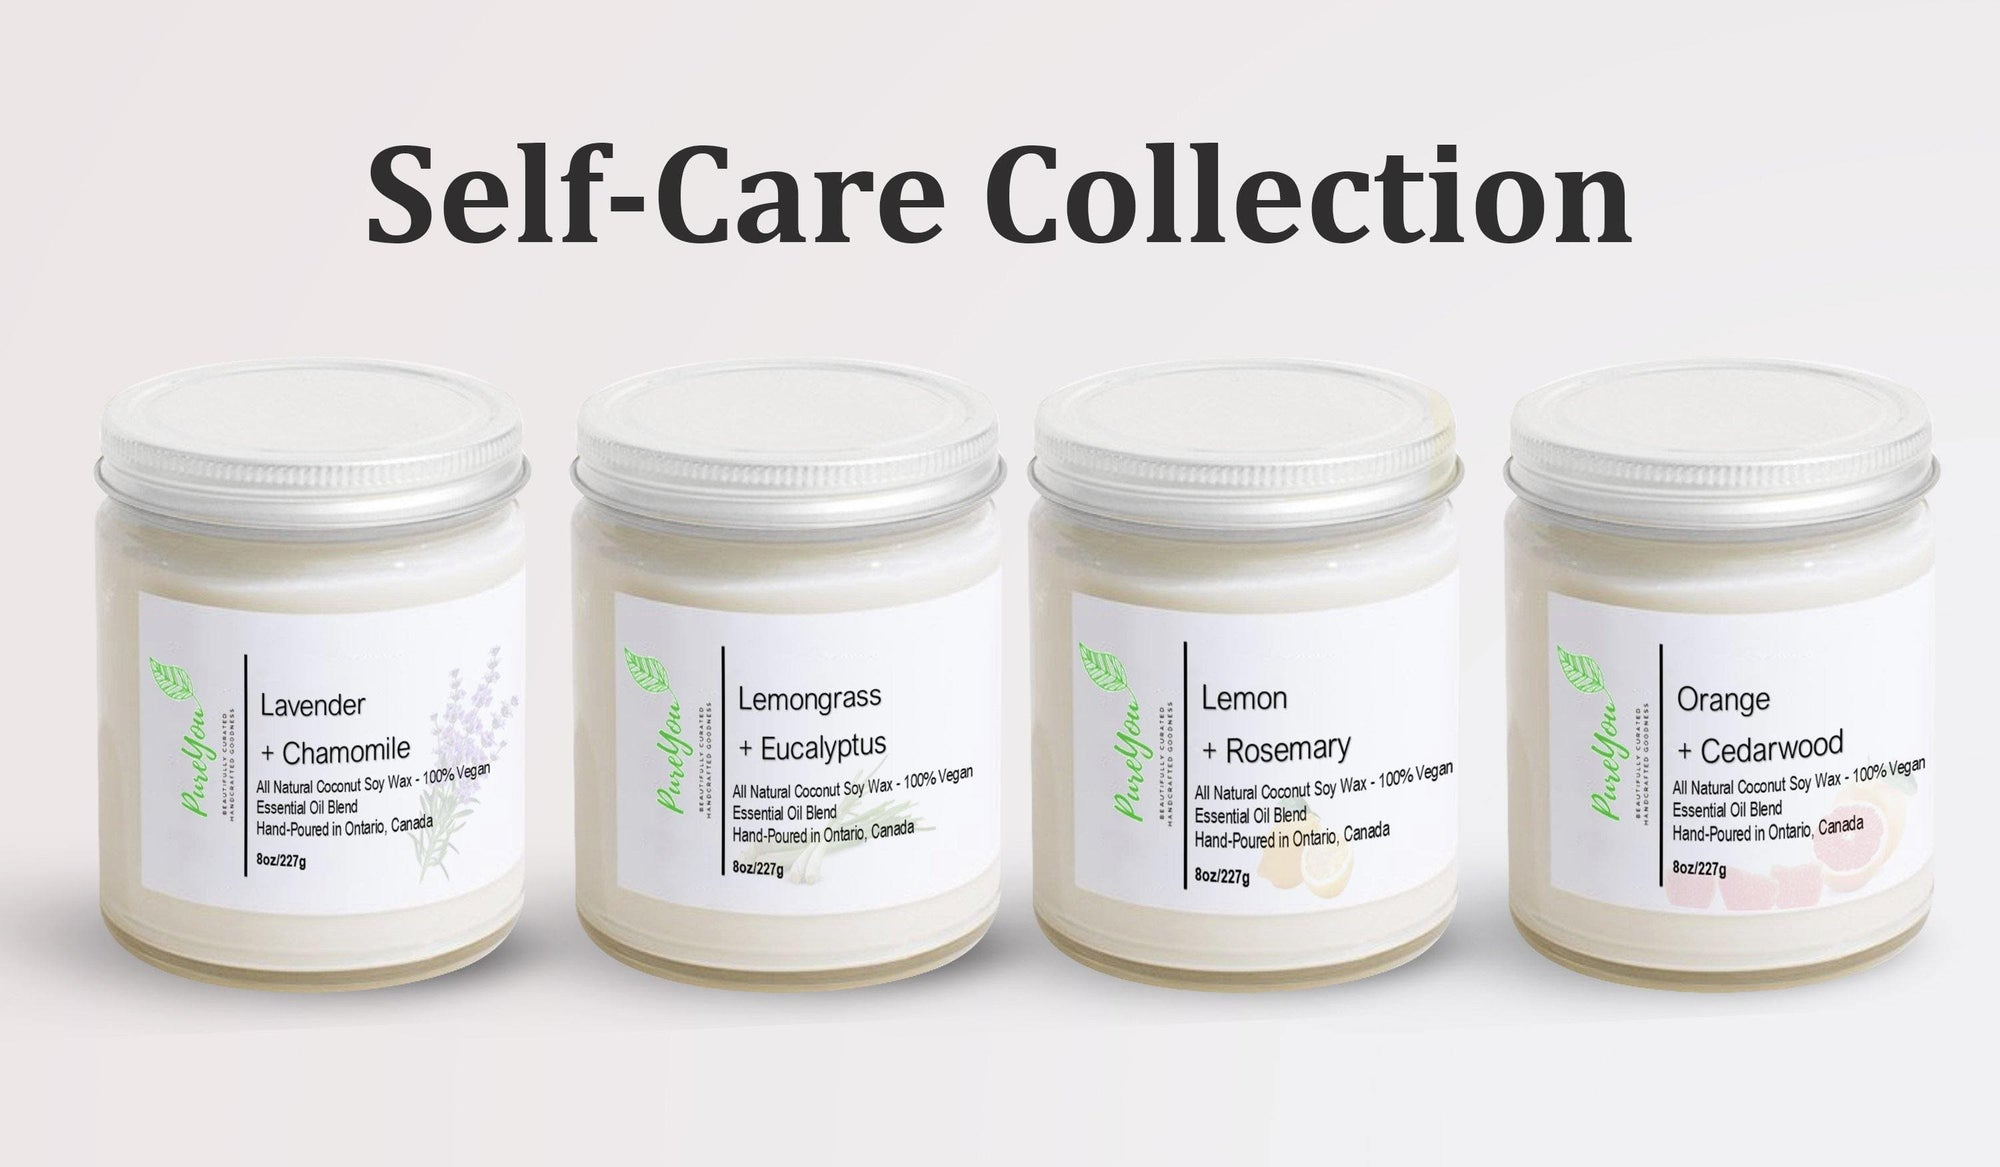 Self-Care Collection of Coconut Soy Wax Candles - PureYou Handmade